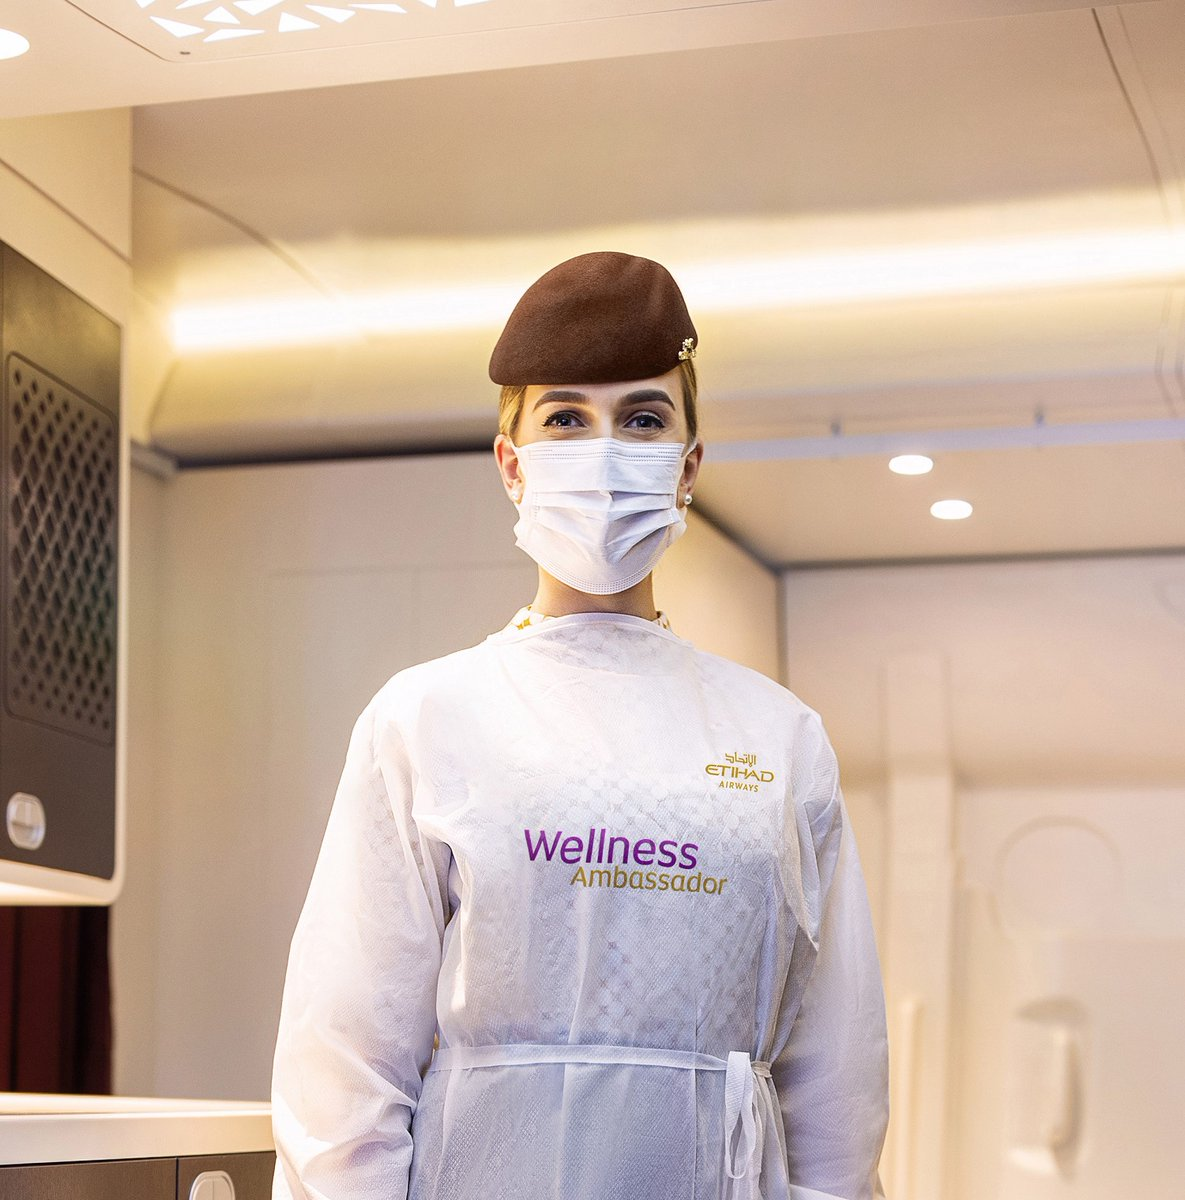 Etihad Airways has introduced wellness ambassadors who will be on board every flight and contactable 24/7 to help travellers with concerns regarding hygiene and safety when flying #aviation #Etihadpic.twitter.com/gpMlZn27GF